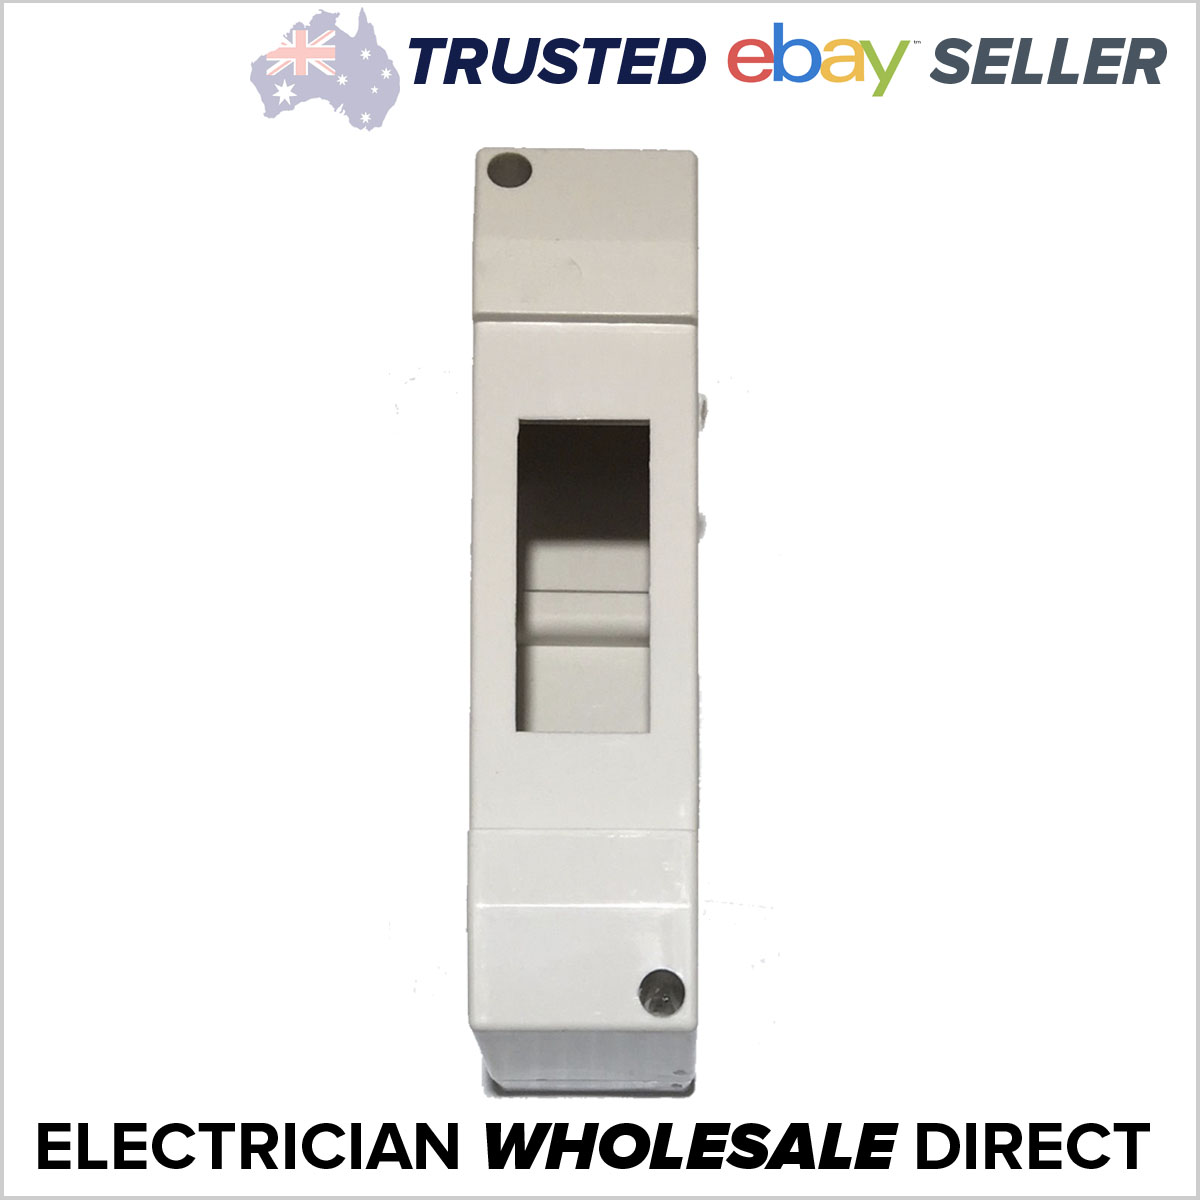 1 pole Enclosure Box for Circuit Breakers Switchboard Electrical ...